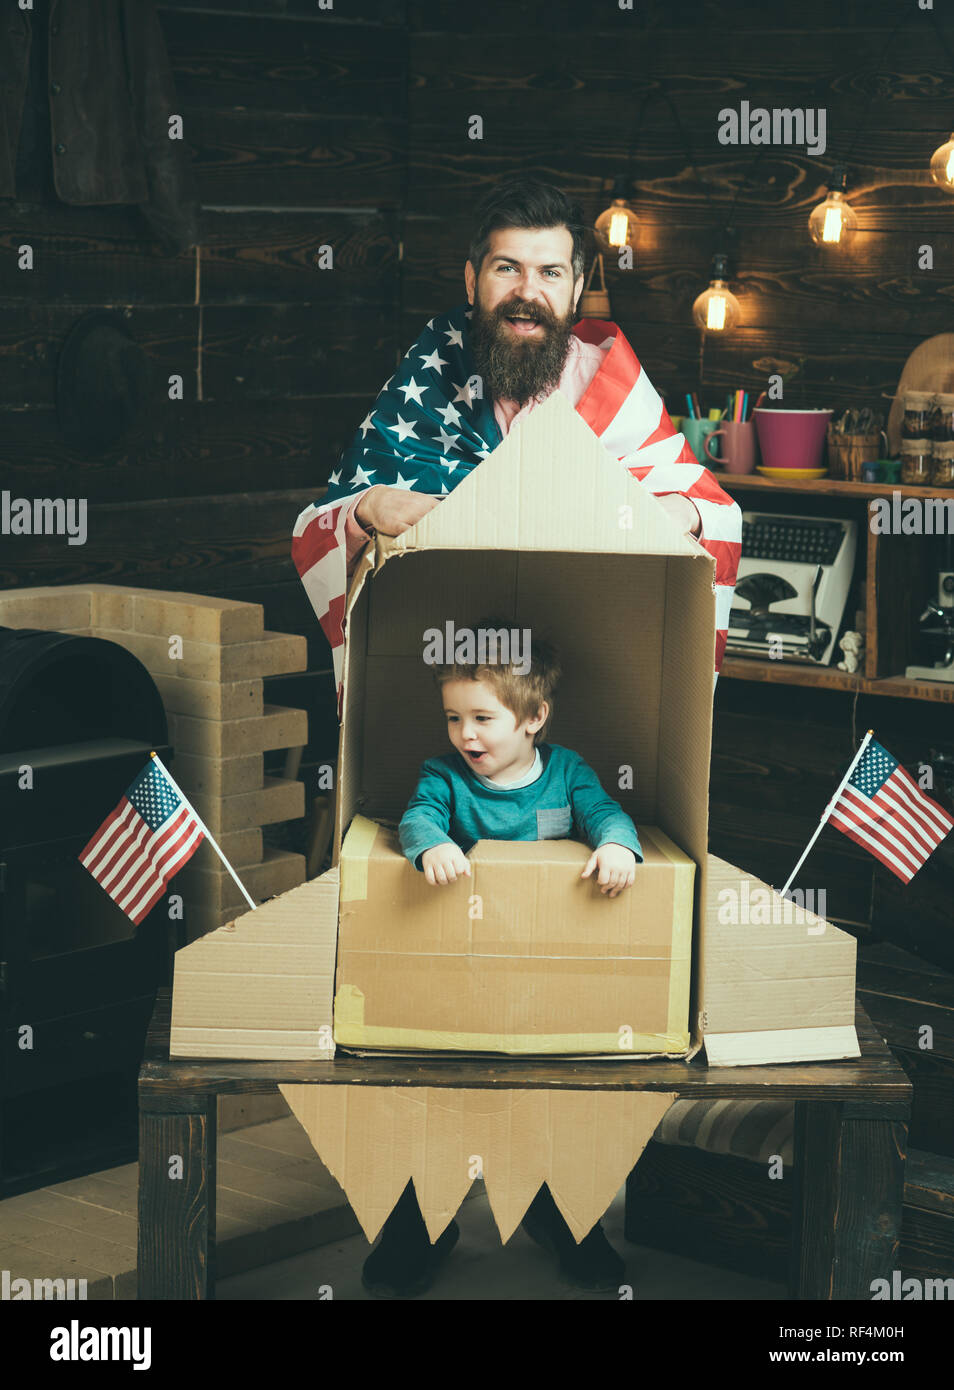 American cheerful family with usa flags play with rocket made out of cardboard box. Child cute boy play cosmonaut, astronaut. Rocket launch concept. Kid happy sit in hand made rocket with usa flags. - Stock Image